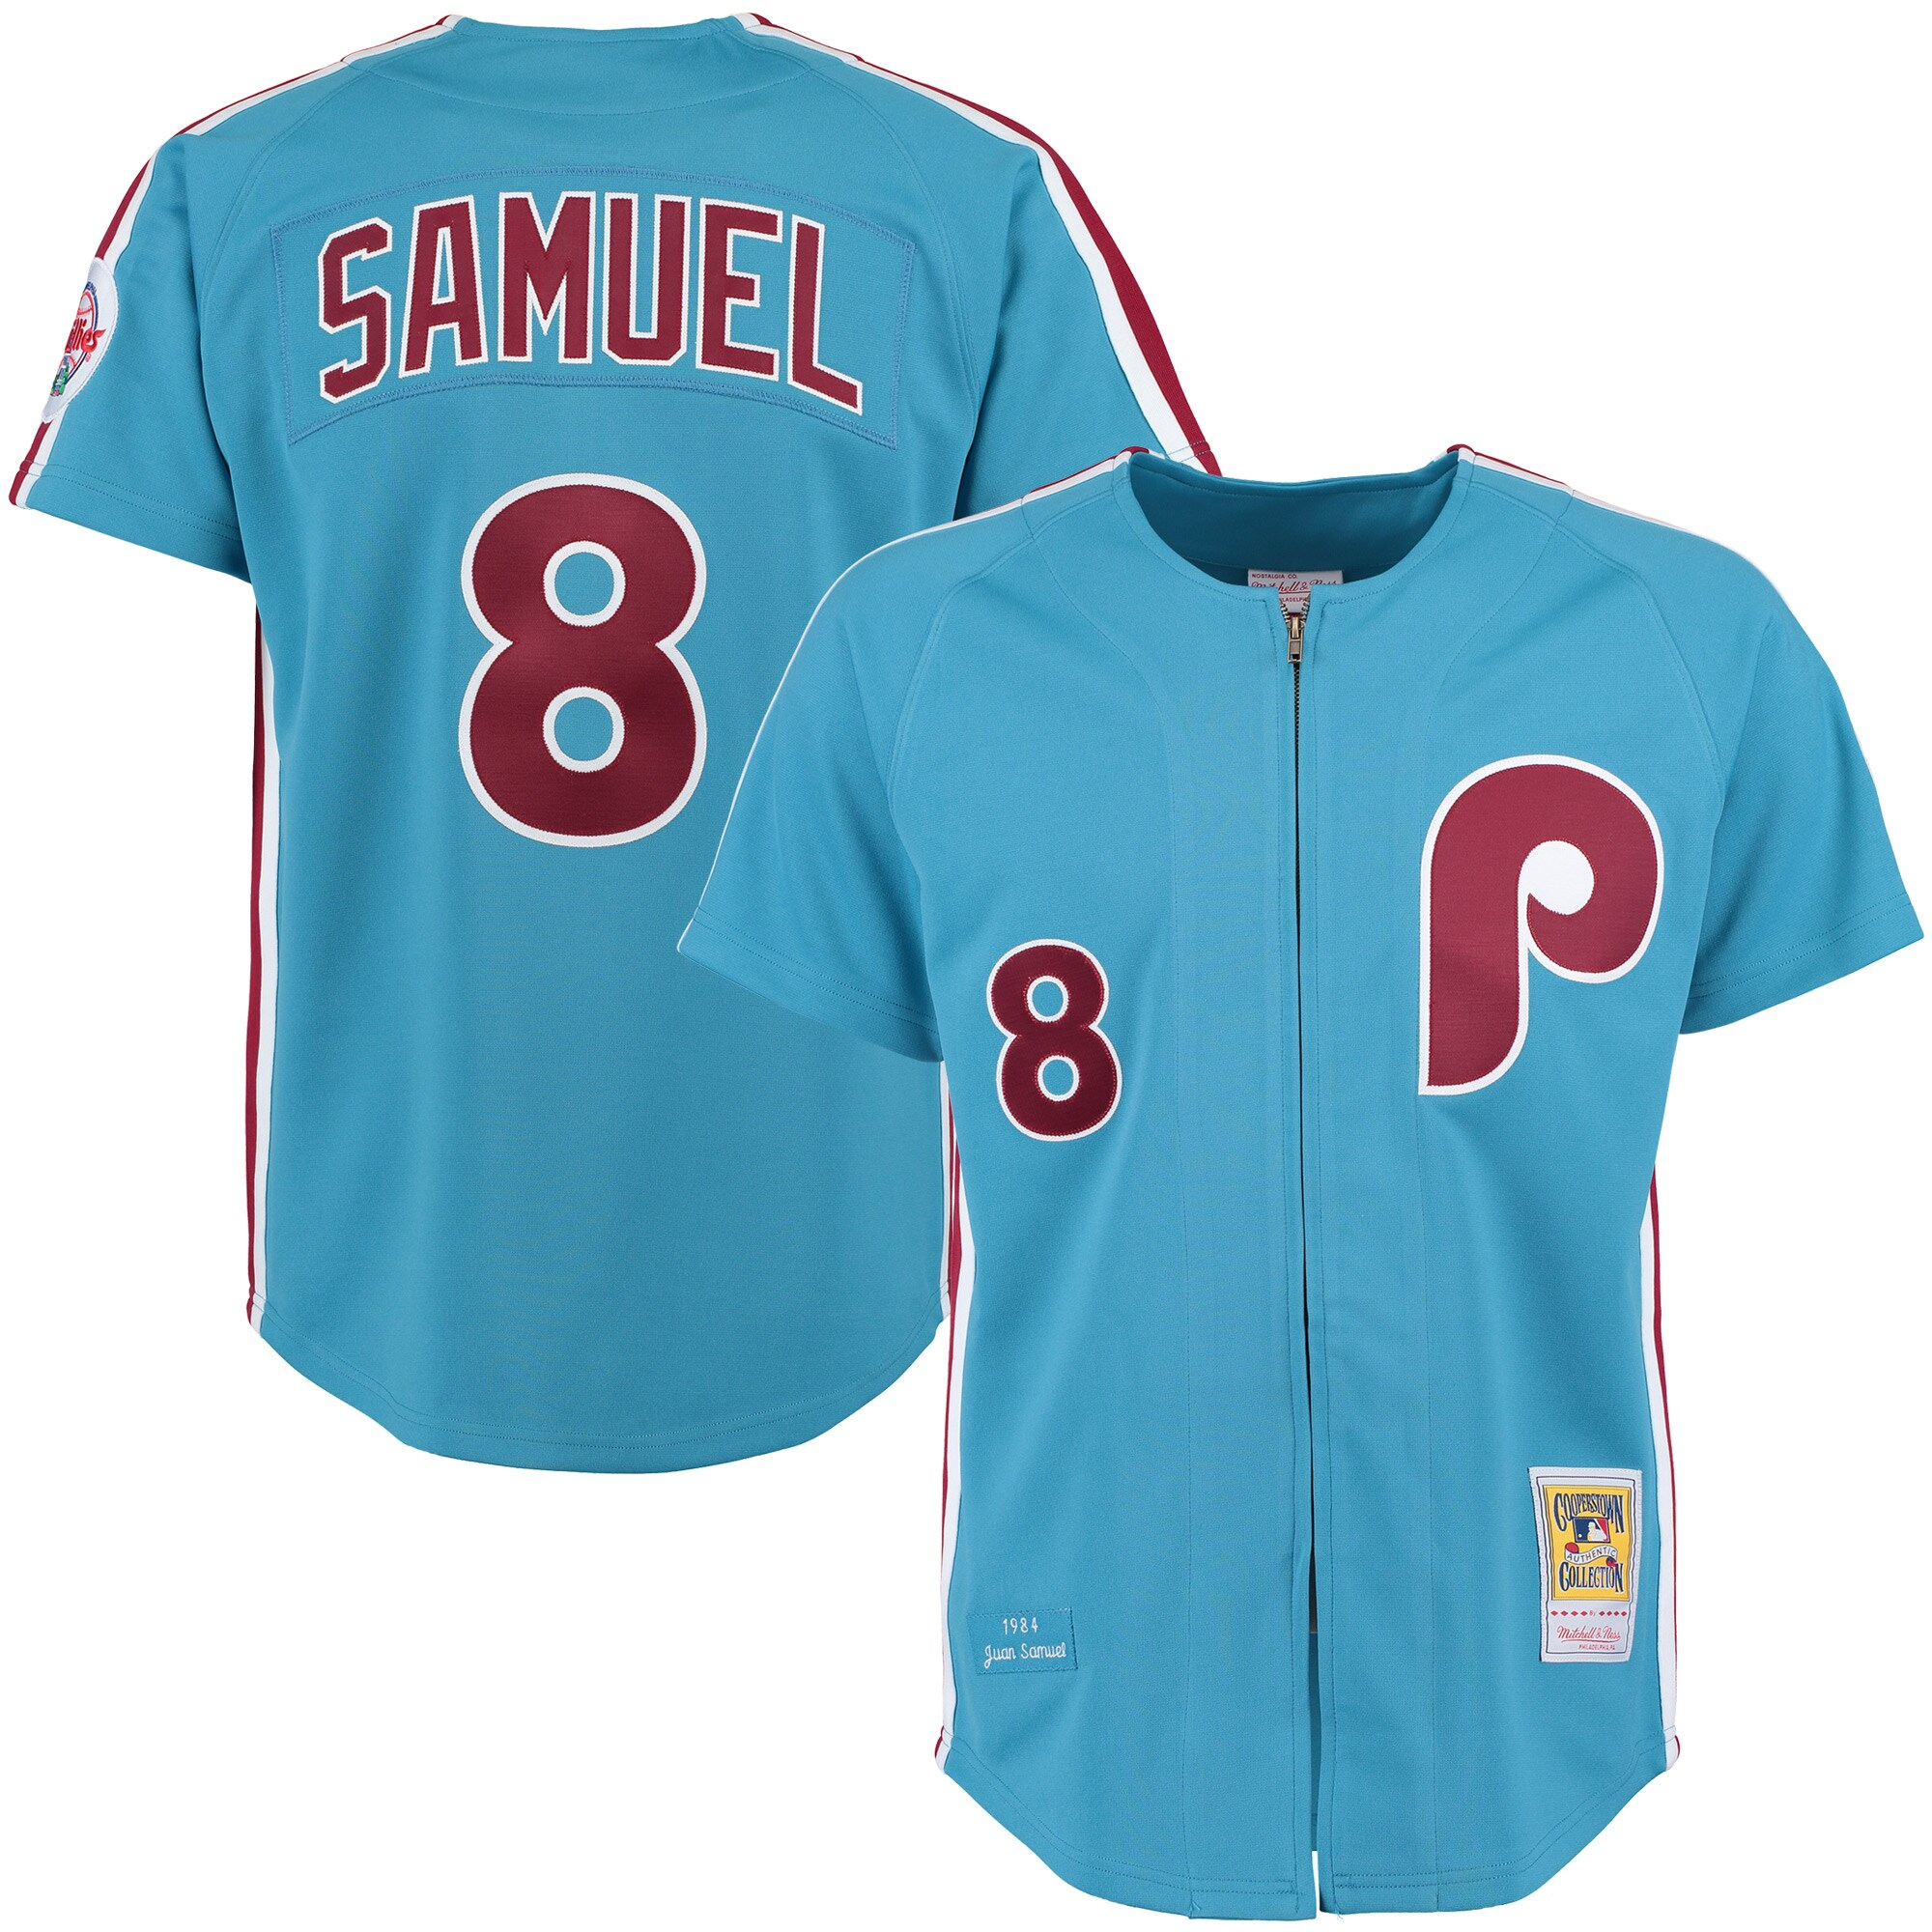 Juan Samuel 1983 Philadelphia Phillies Mitchell & Ness Authentic Throwback Jersey - Light Blue